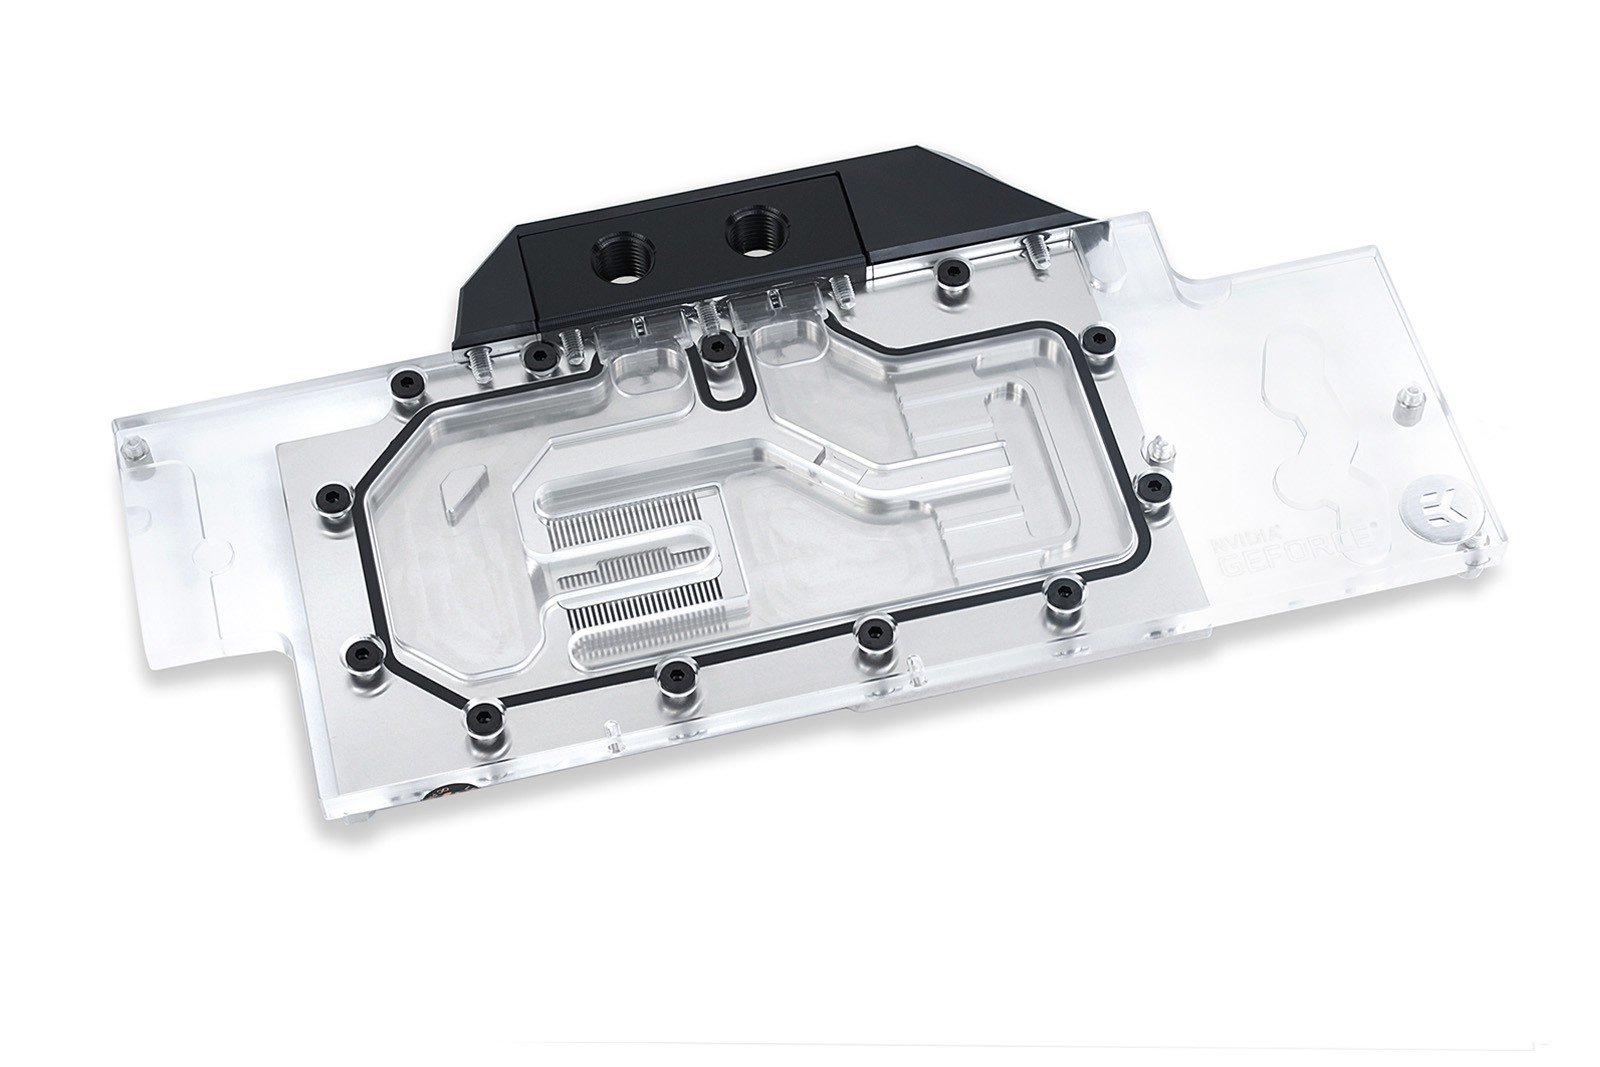 EKWB EK-FC GeForce GTX FE GPU Waterblock, Nickel by EKWB